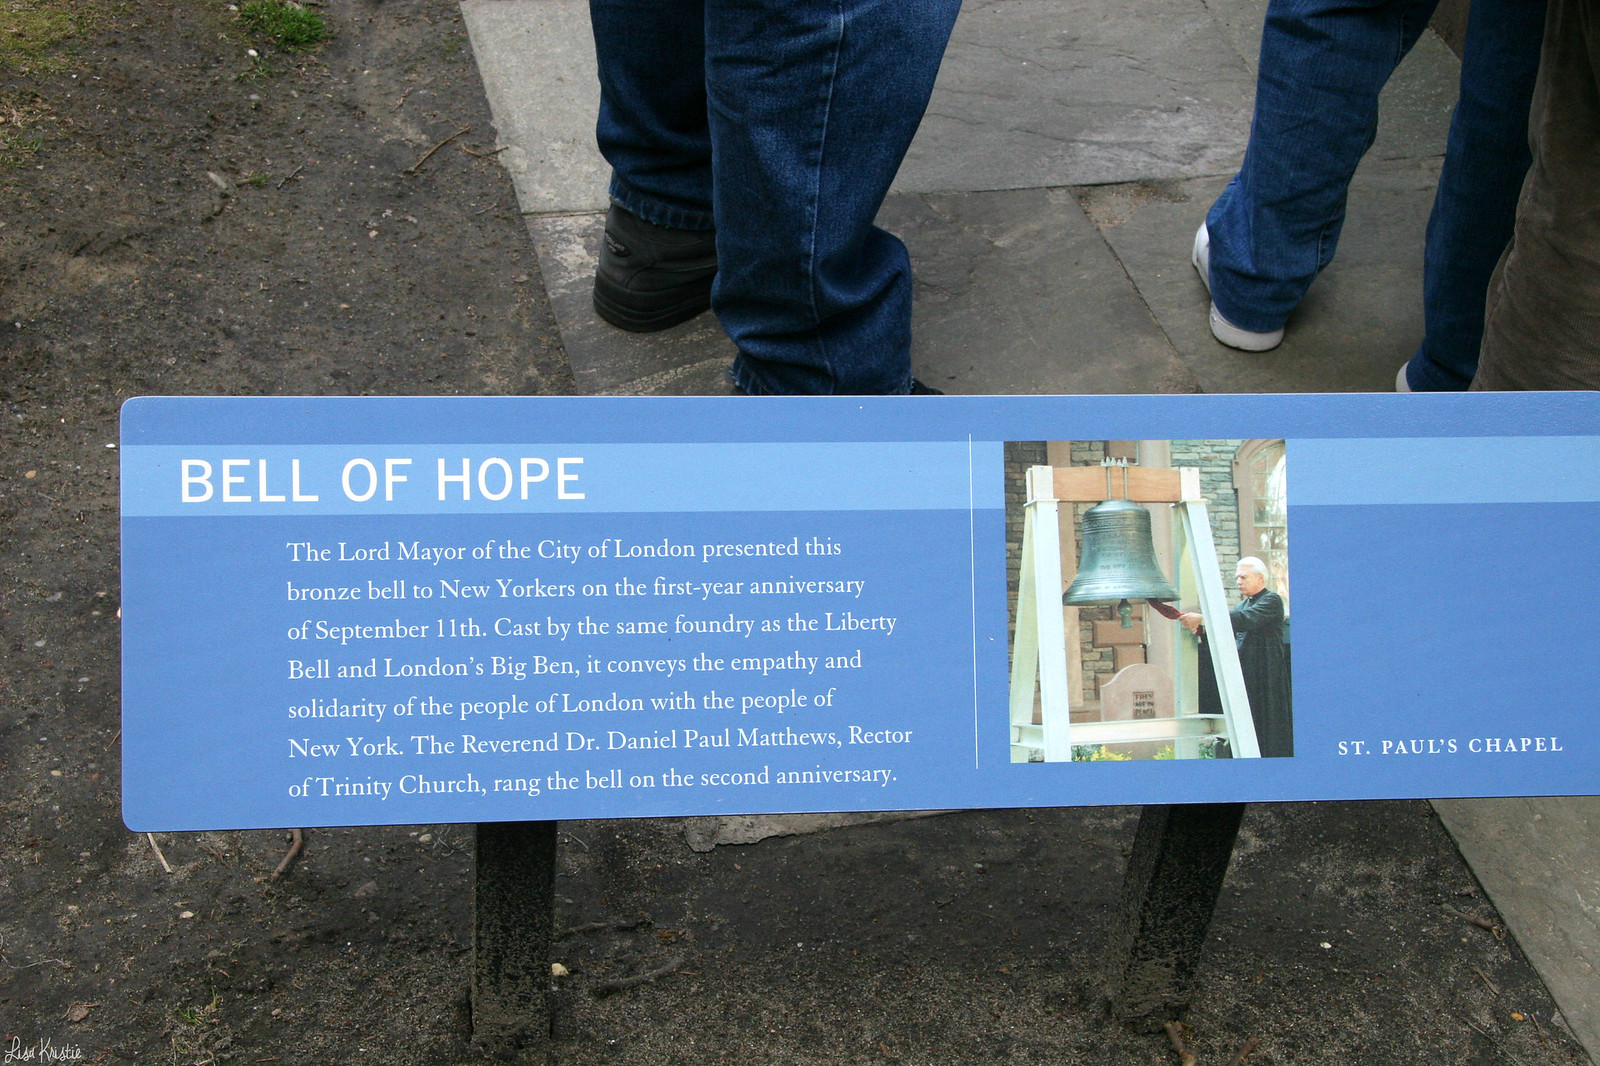 Saint Paul's Chapel church bell of hope explanation text plate plaque monument memorial 9/11 september 11th 2001 spring april 2007 world trade center wtc ground zero